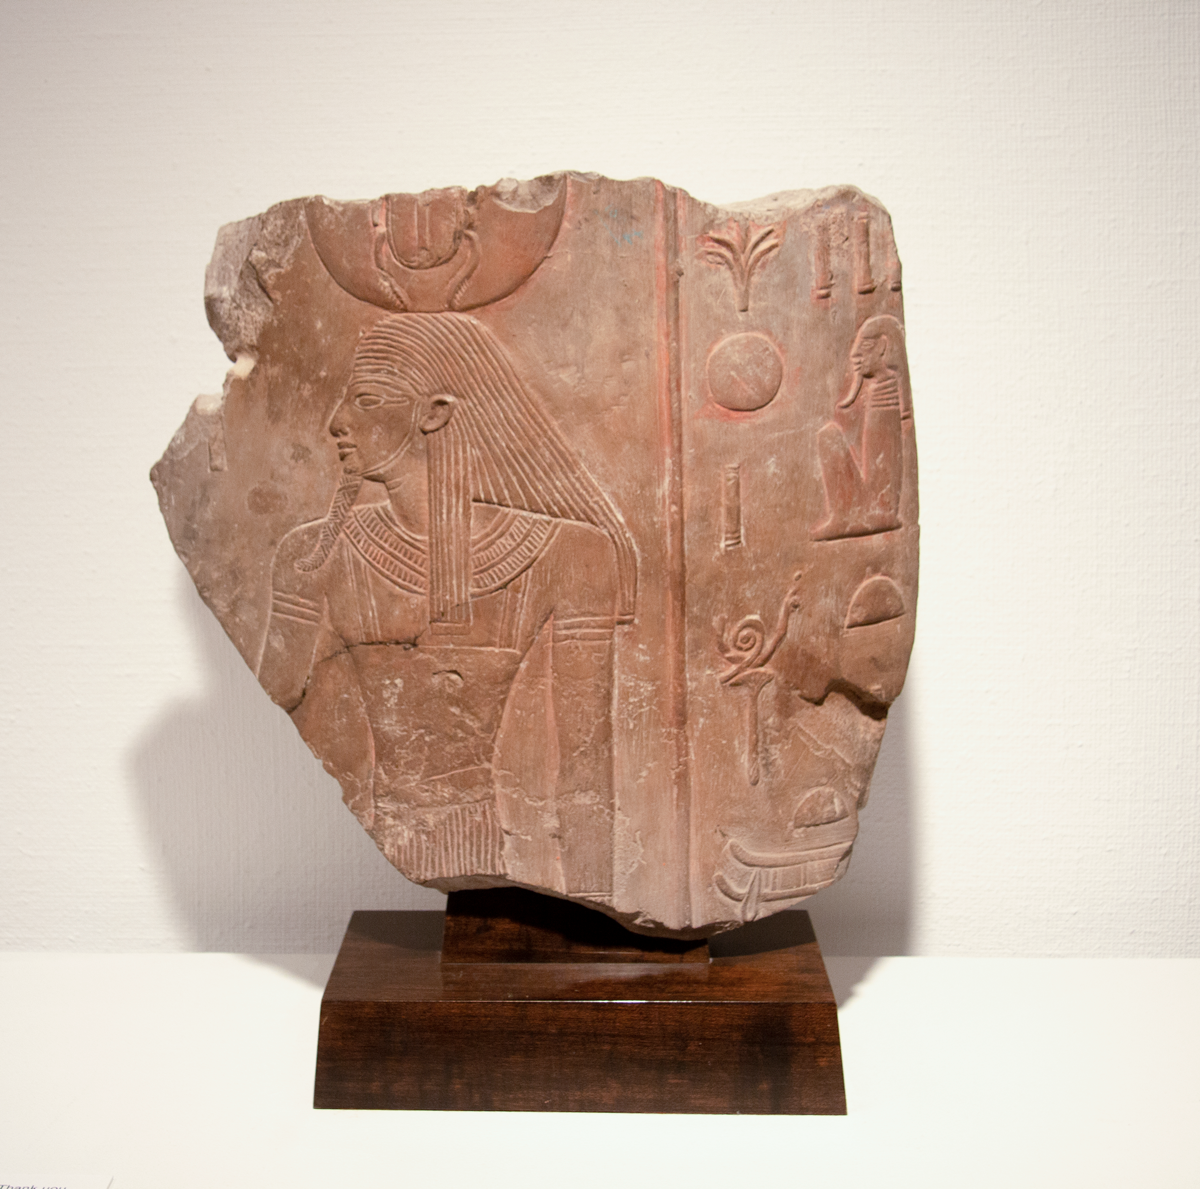 A large, tan, broken piece of an ancient Egyptian column. Carved into the stone fragment is an Egyptian man facing left. Half of a scarab beetle is above his head, broken off at the edge of the fragment. To the right are hieroglyphs.